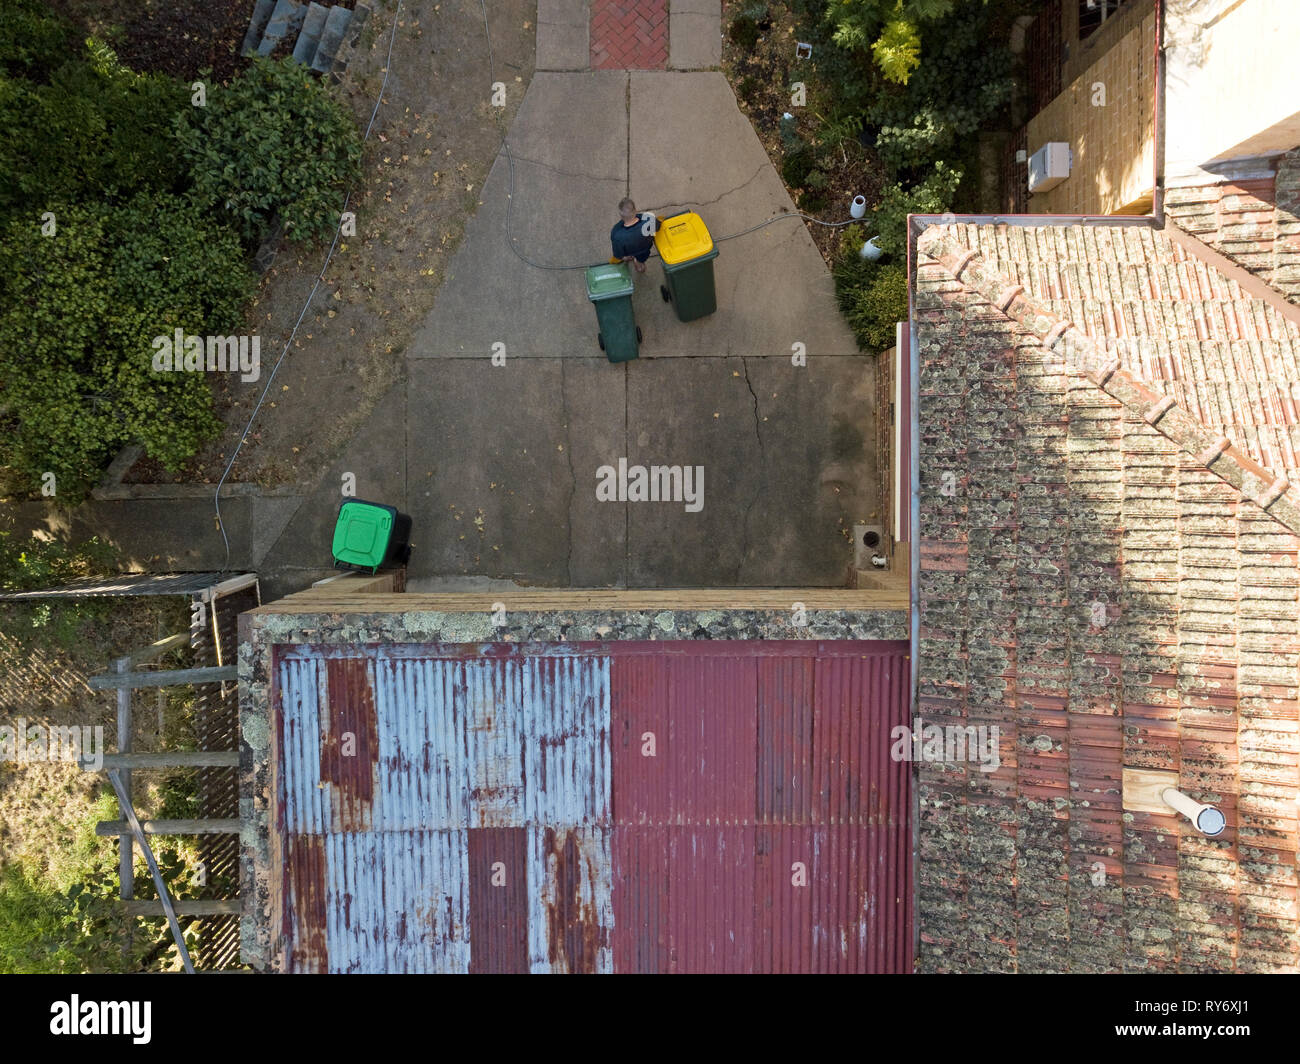 Pensioner active at home aerial view from above, taking the rubbish bins out. Aerial photography captured in Victoria, Australia. - Stock Image